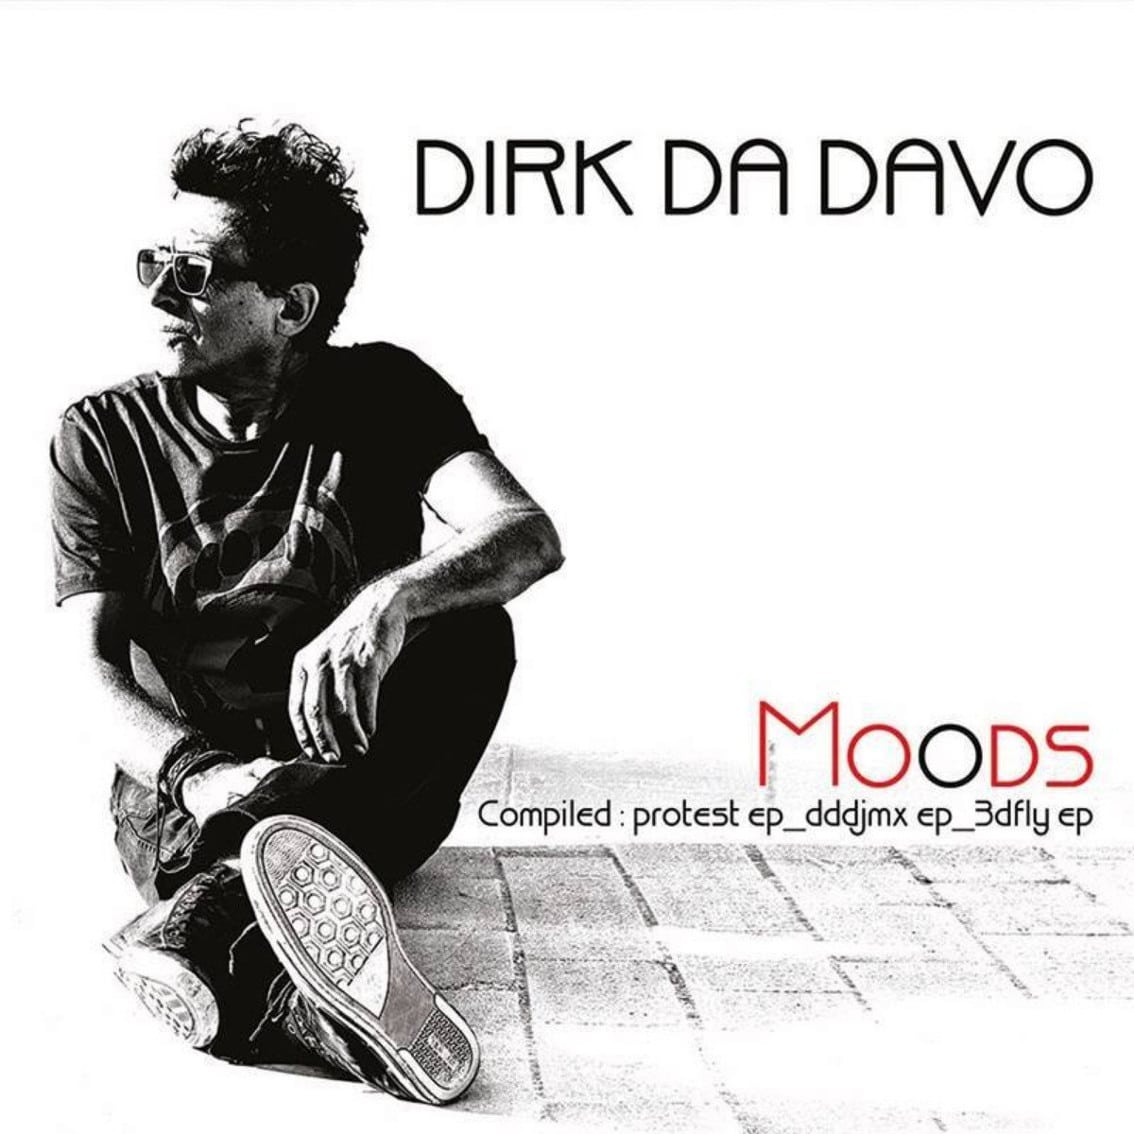 Dirk Da Davo back with'MOODS' album - limited to 200 copies!